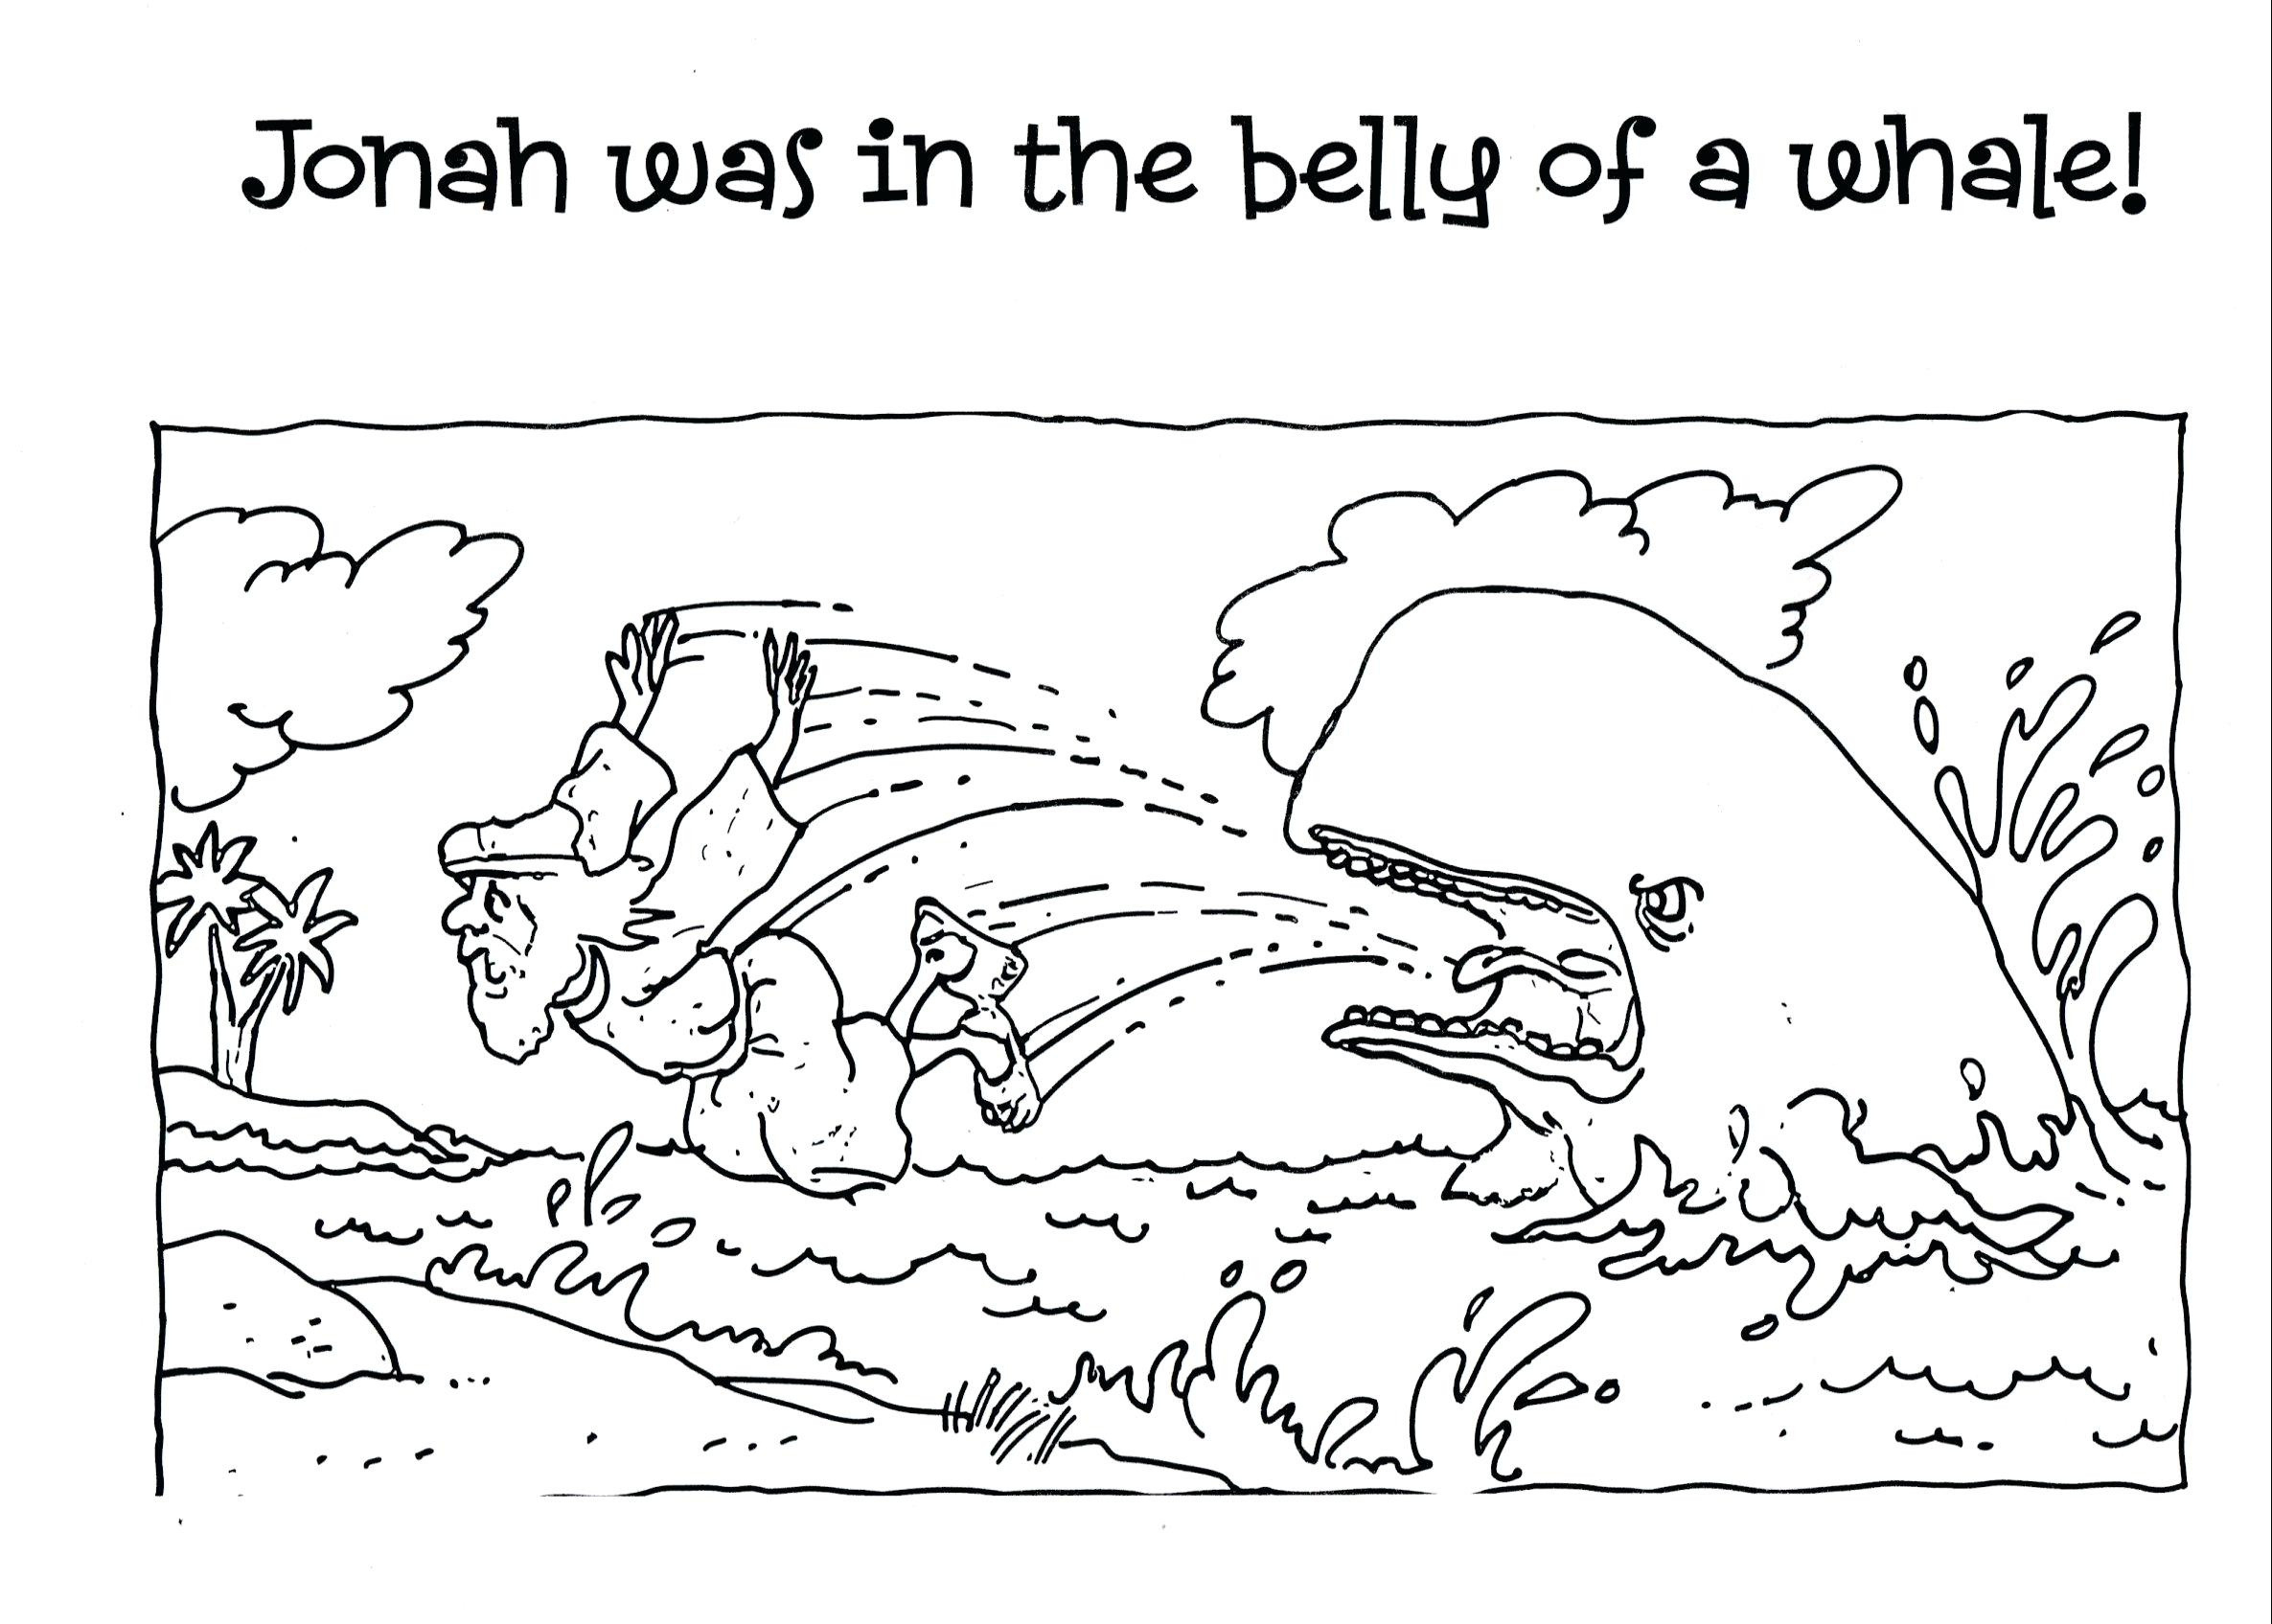 jonah and the whale coloring pages for preschoolers Download-Jonah and the Whale Coloring Pages for Preschoolers Best Bible Story Coloring Pages Awesome Easy 10-q